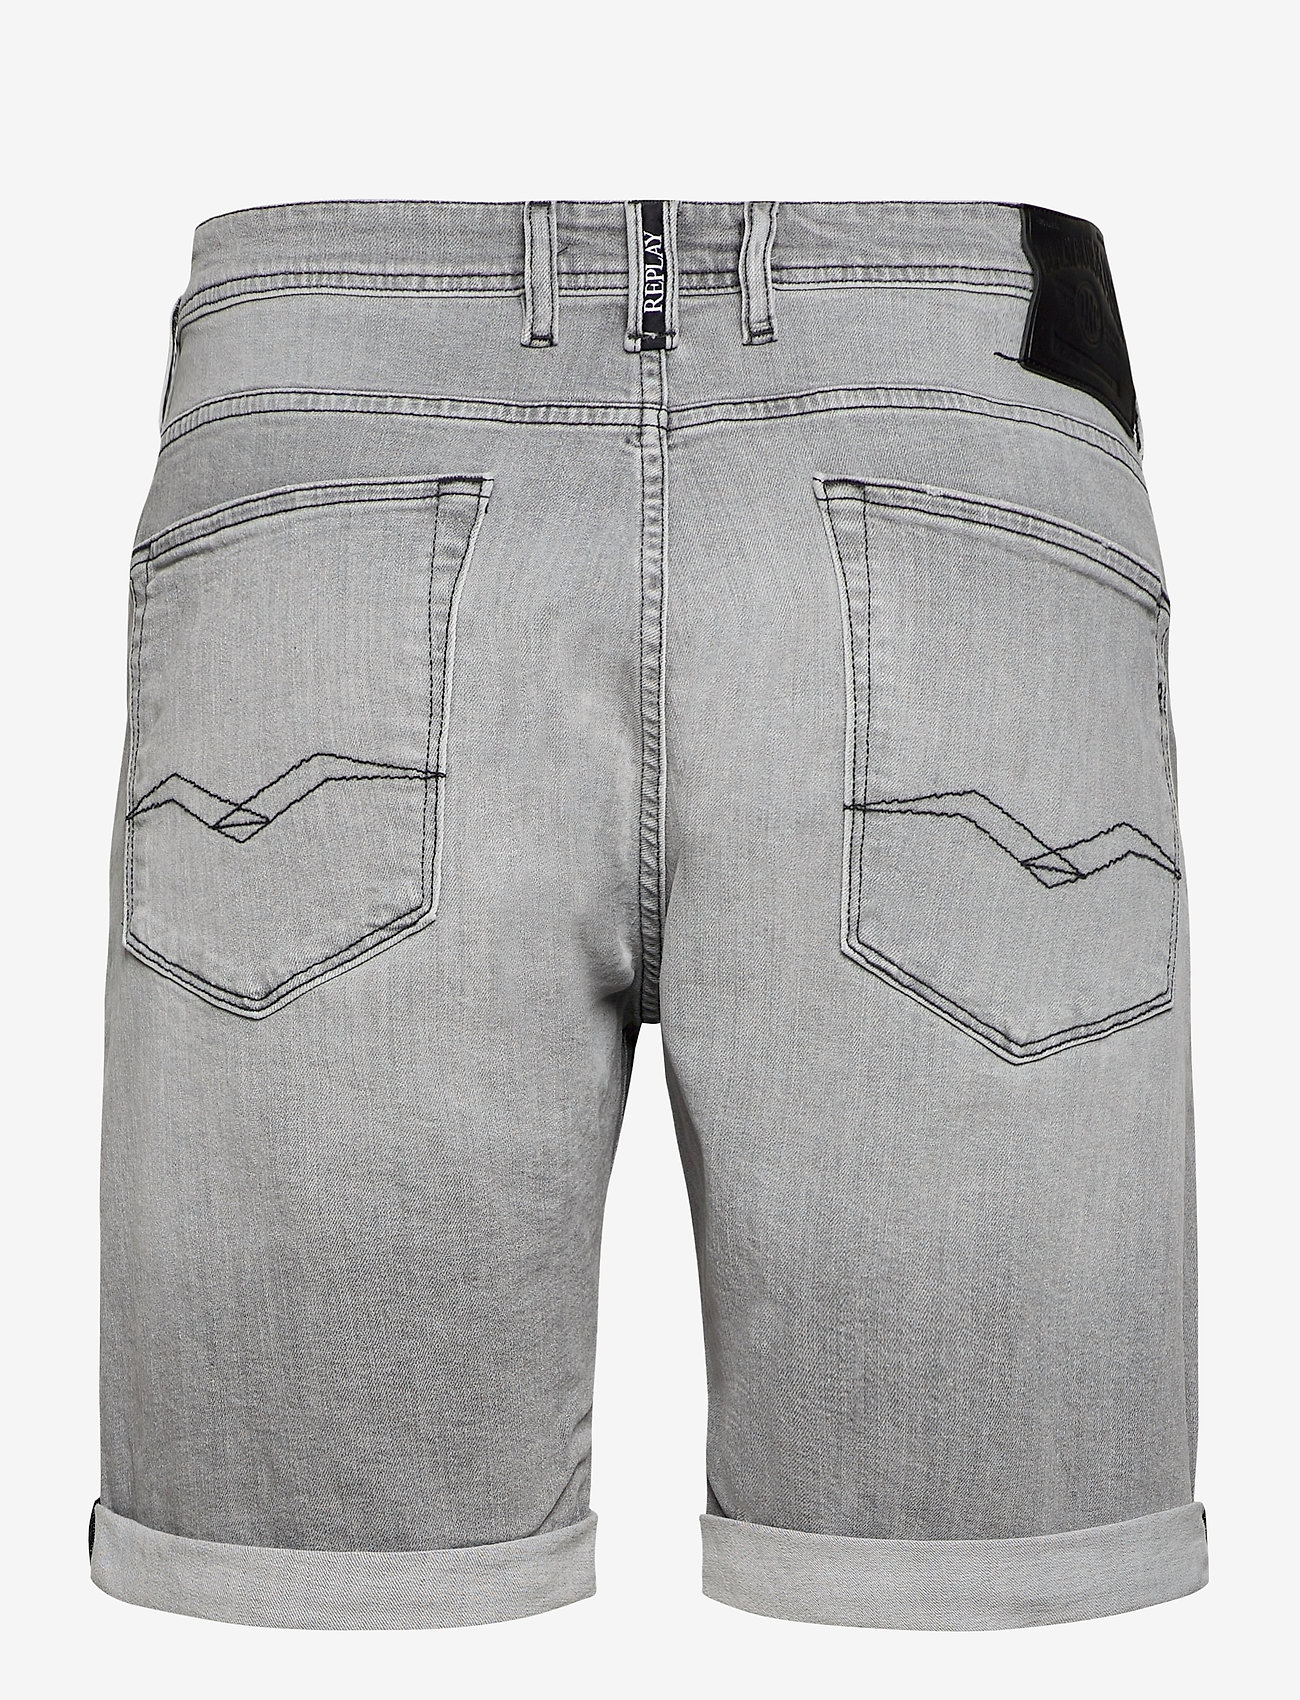 Replay - RBJ.901 SHORT - denim shorts - light grey - 1